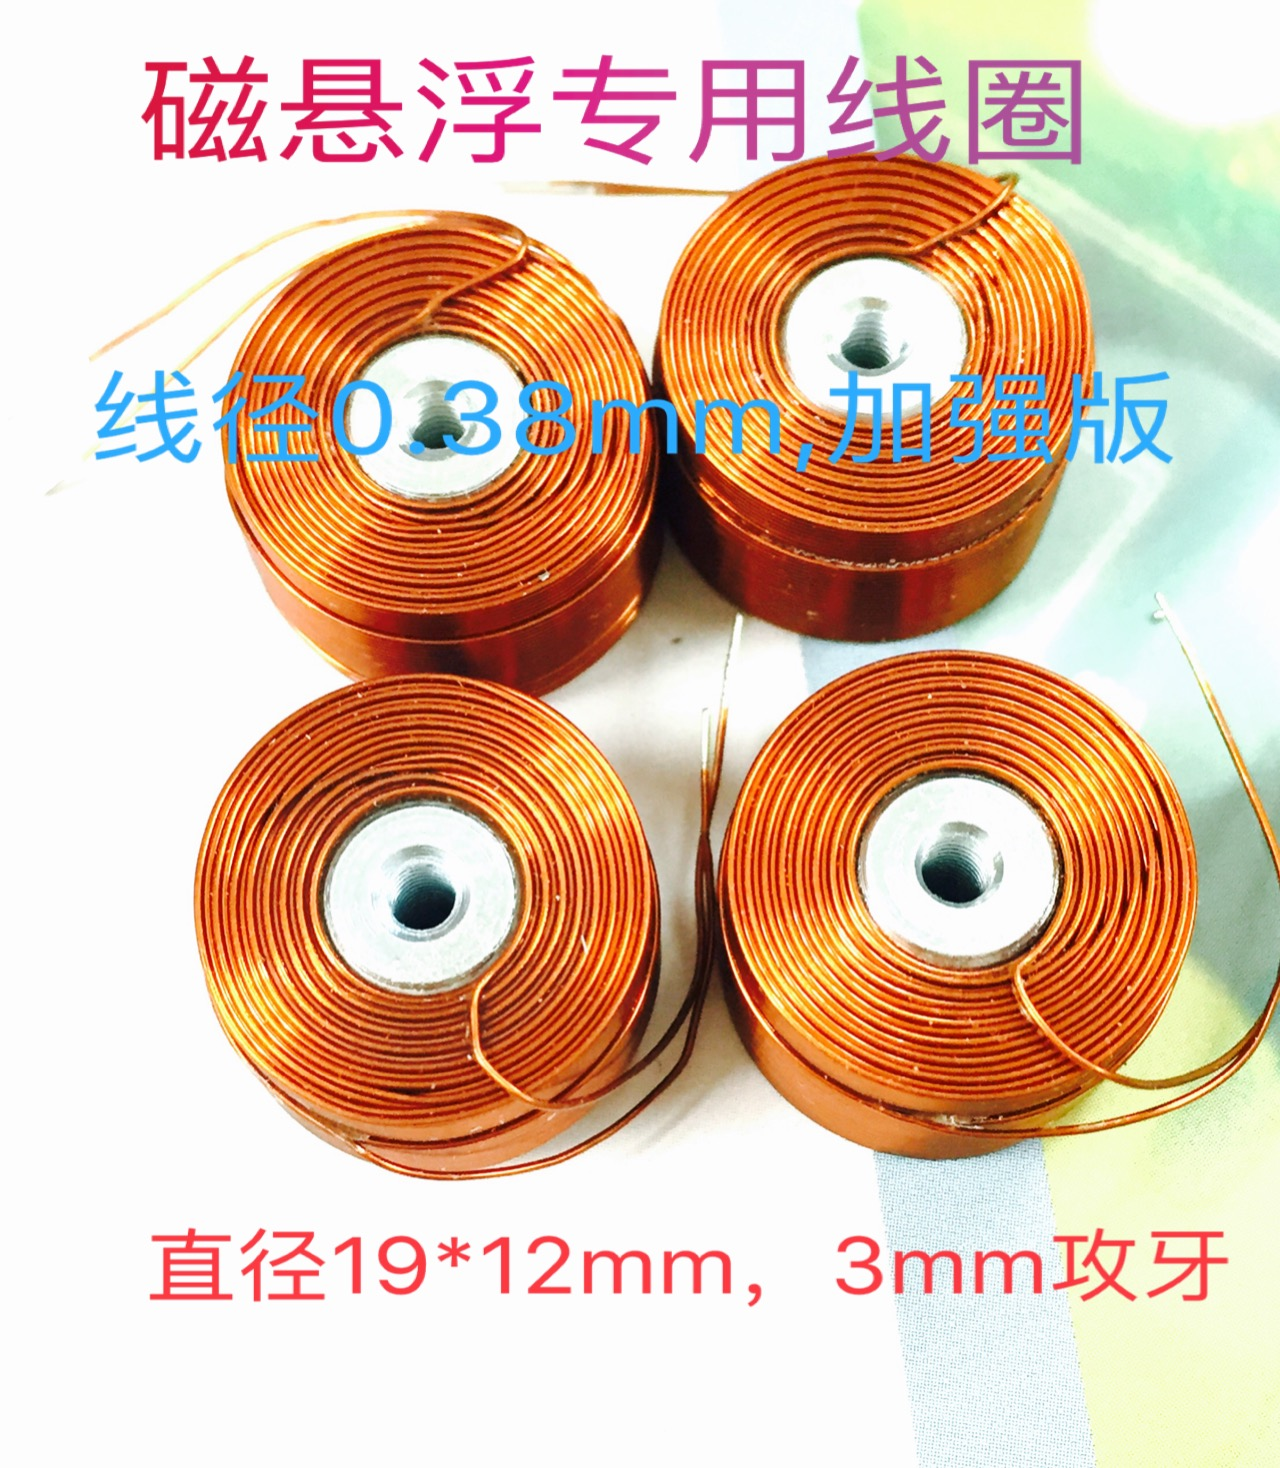 Magnetic levitation coil 100 system coil push down type of the third ...